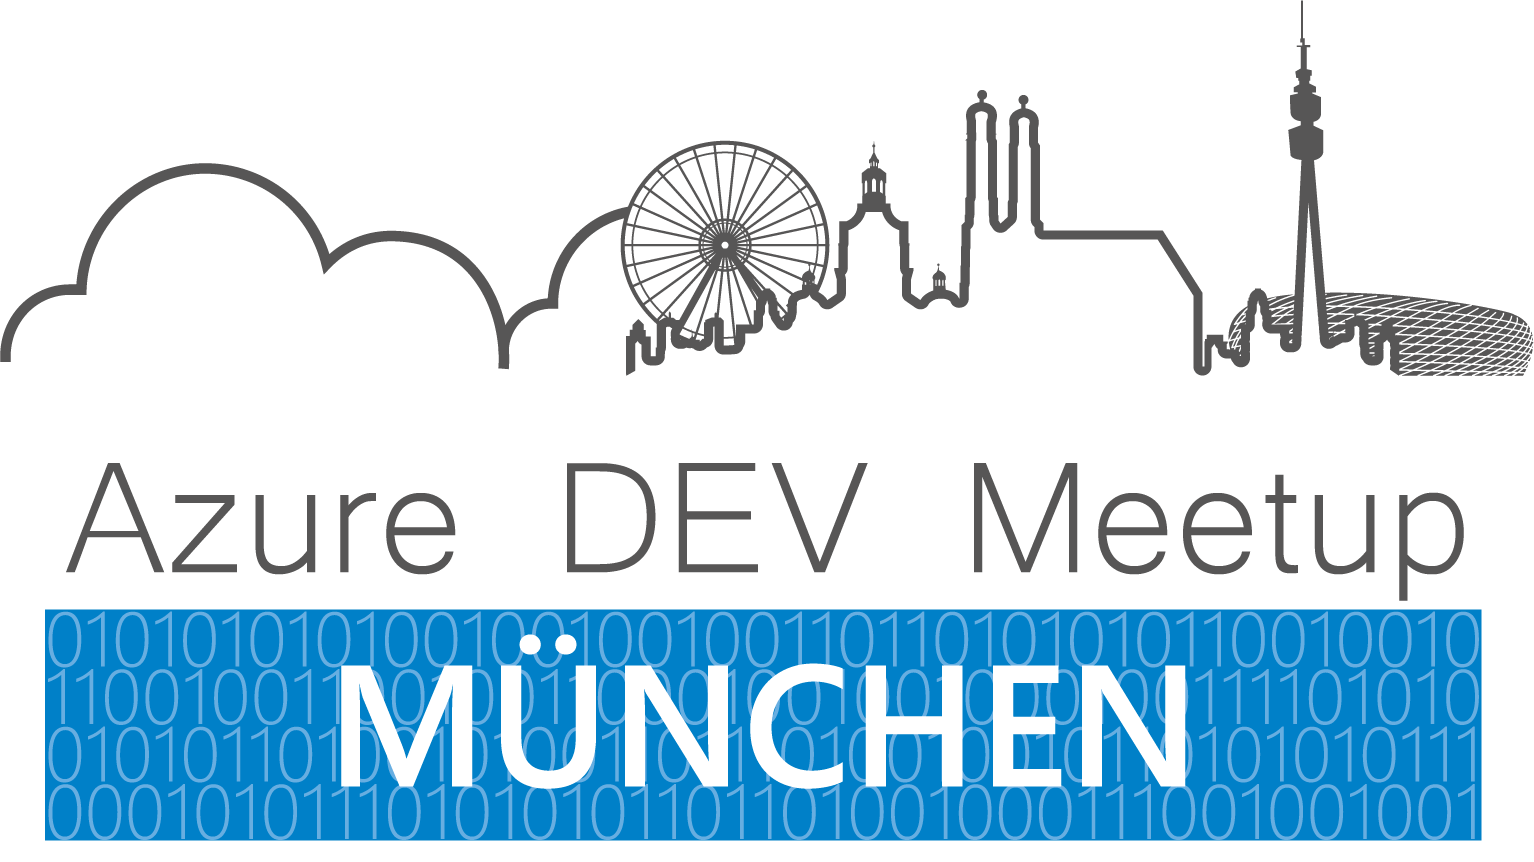 Azure DEV Meetup Munich